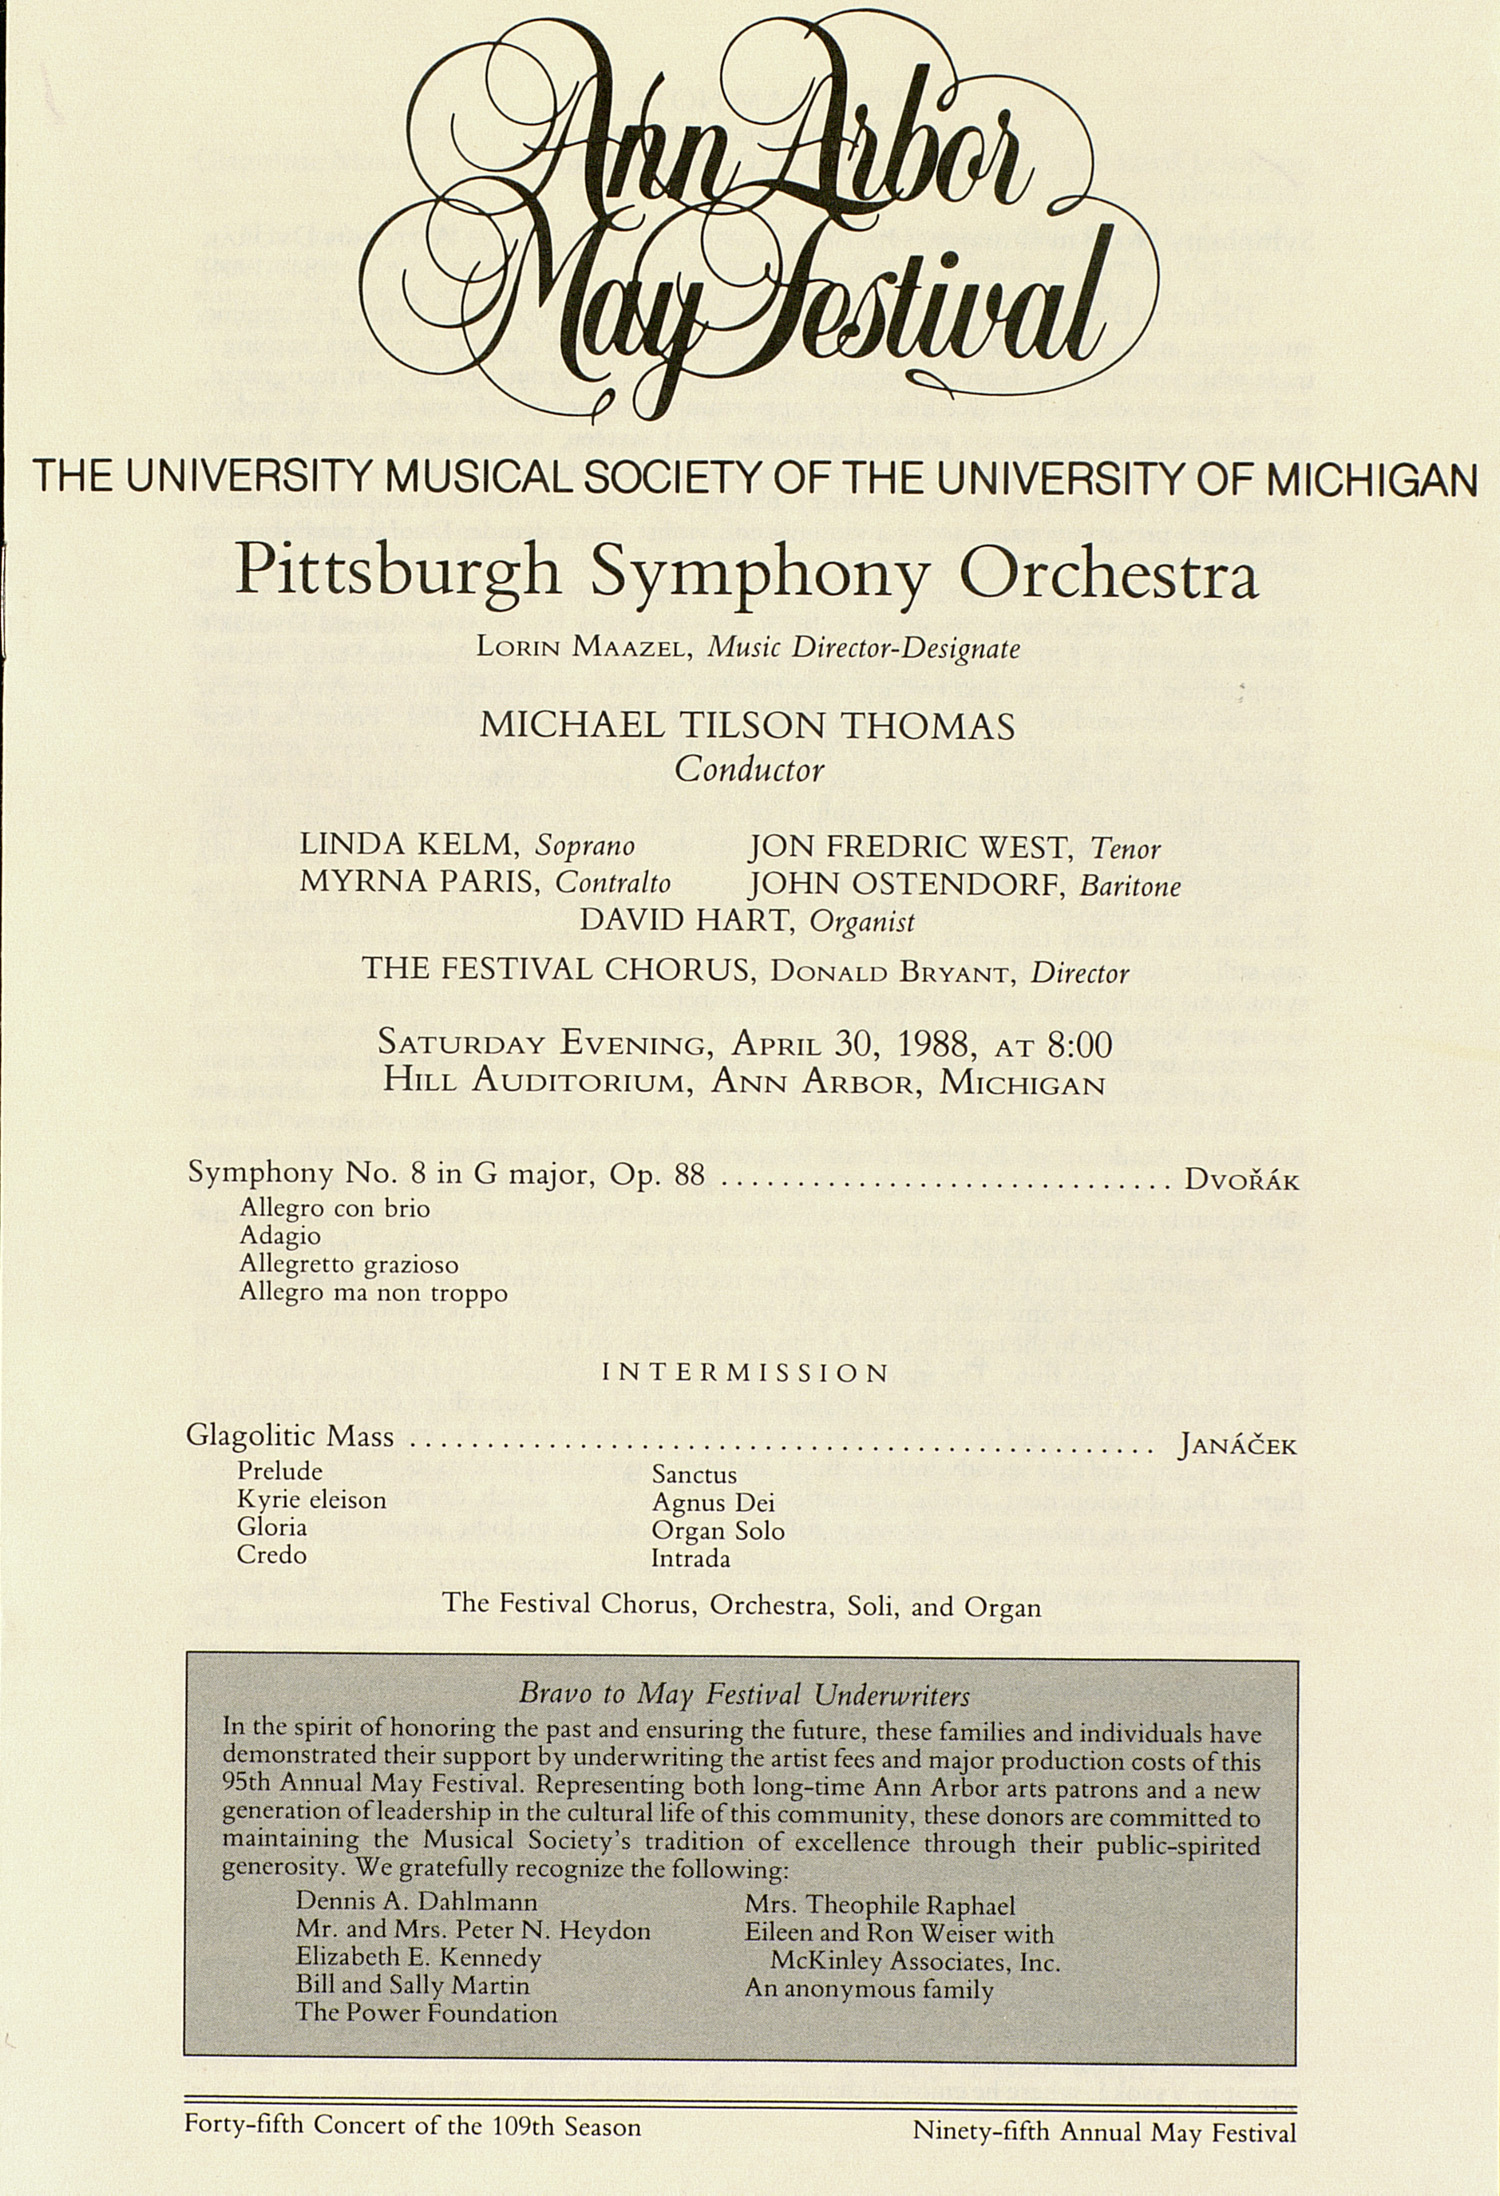 UMS Concert Program, April 30, 1988: Ann Arbor May Festival -- Pittsburgh Symphony Orchestra image